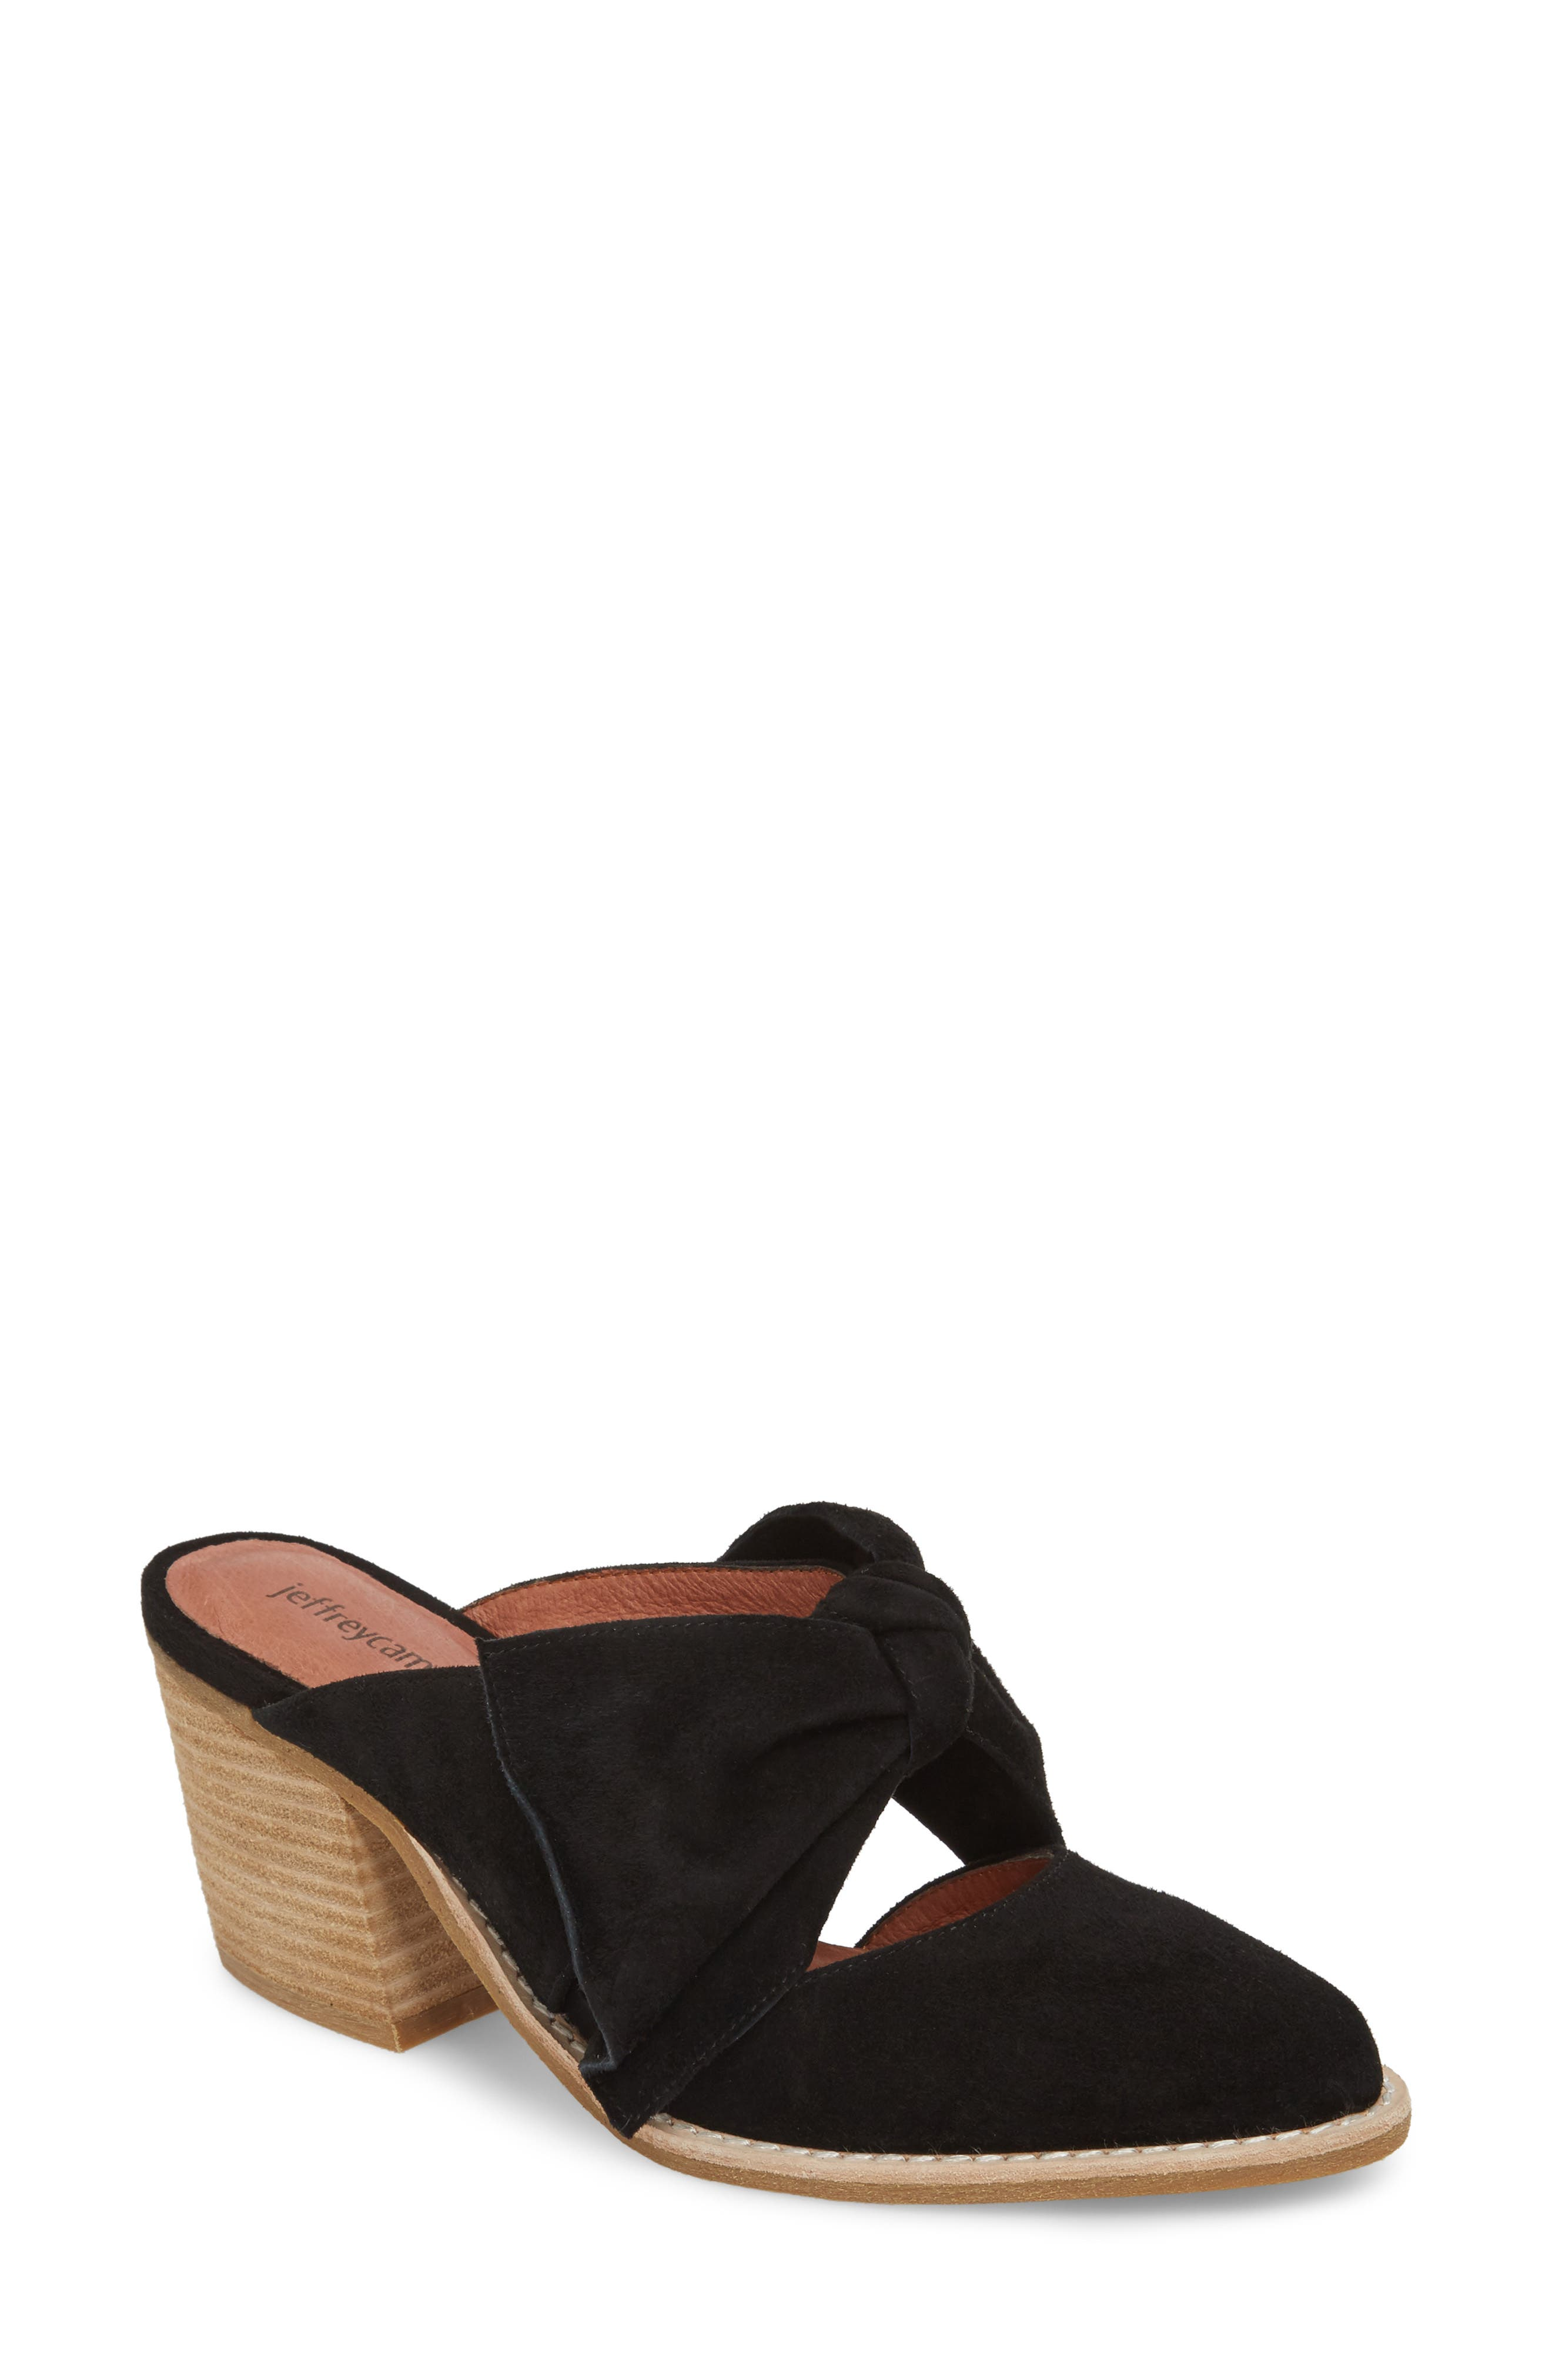 Jeffrey Campbell Cyrus Knotted Mary Jane Mule (Women)